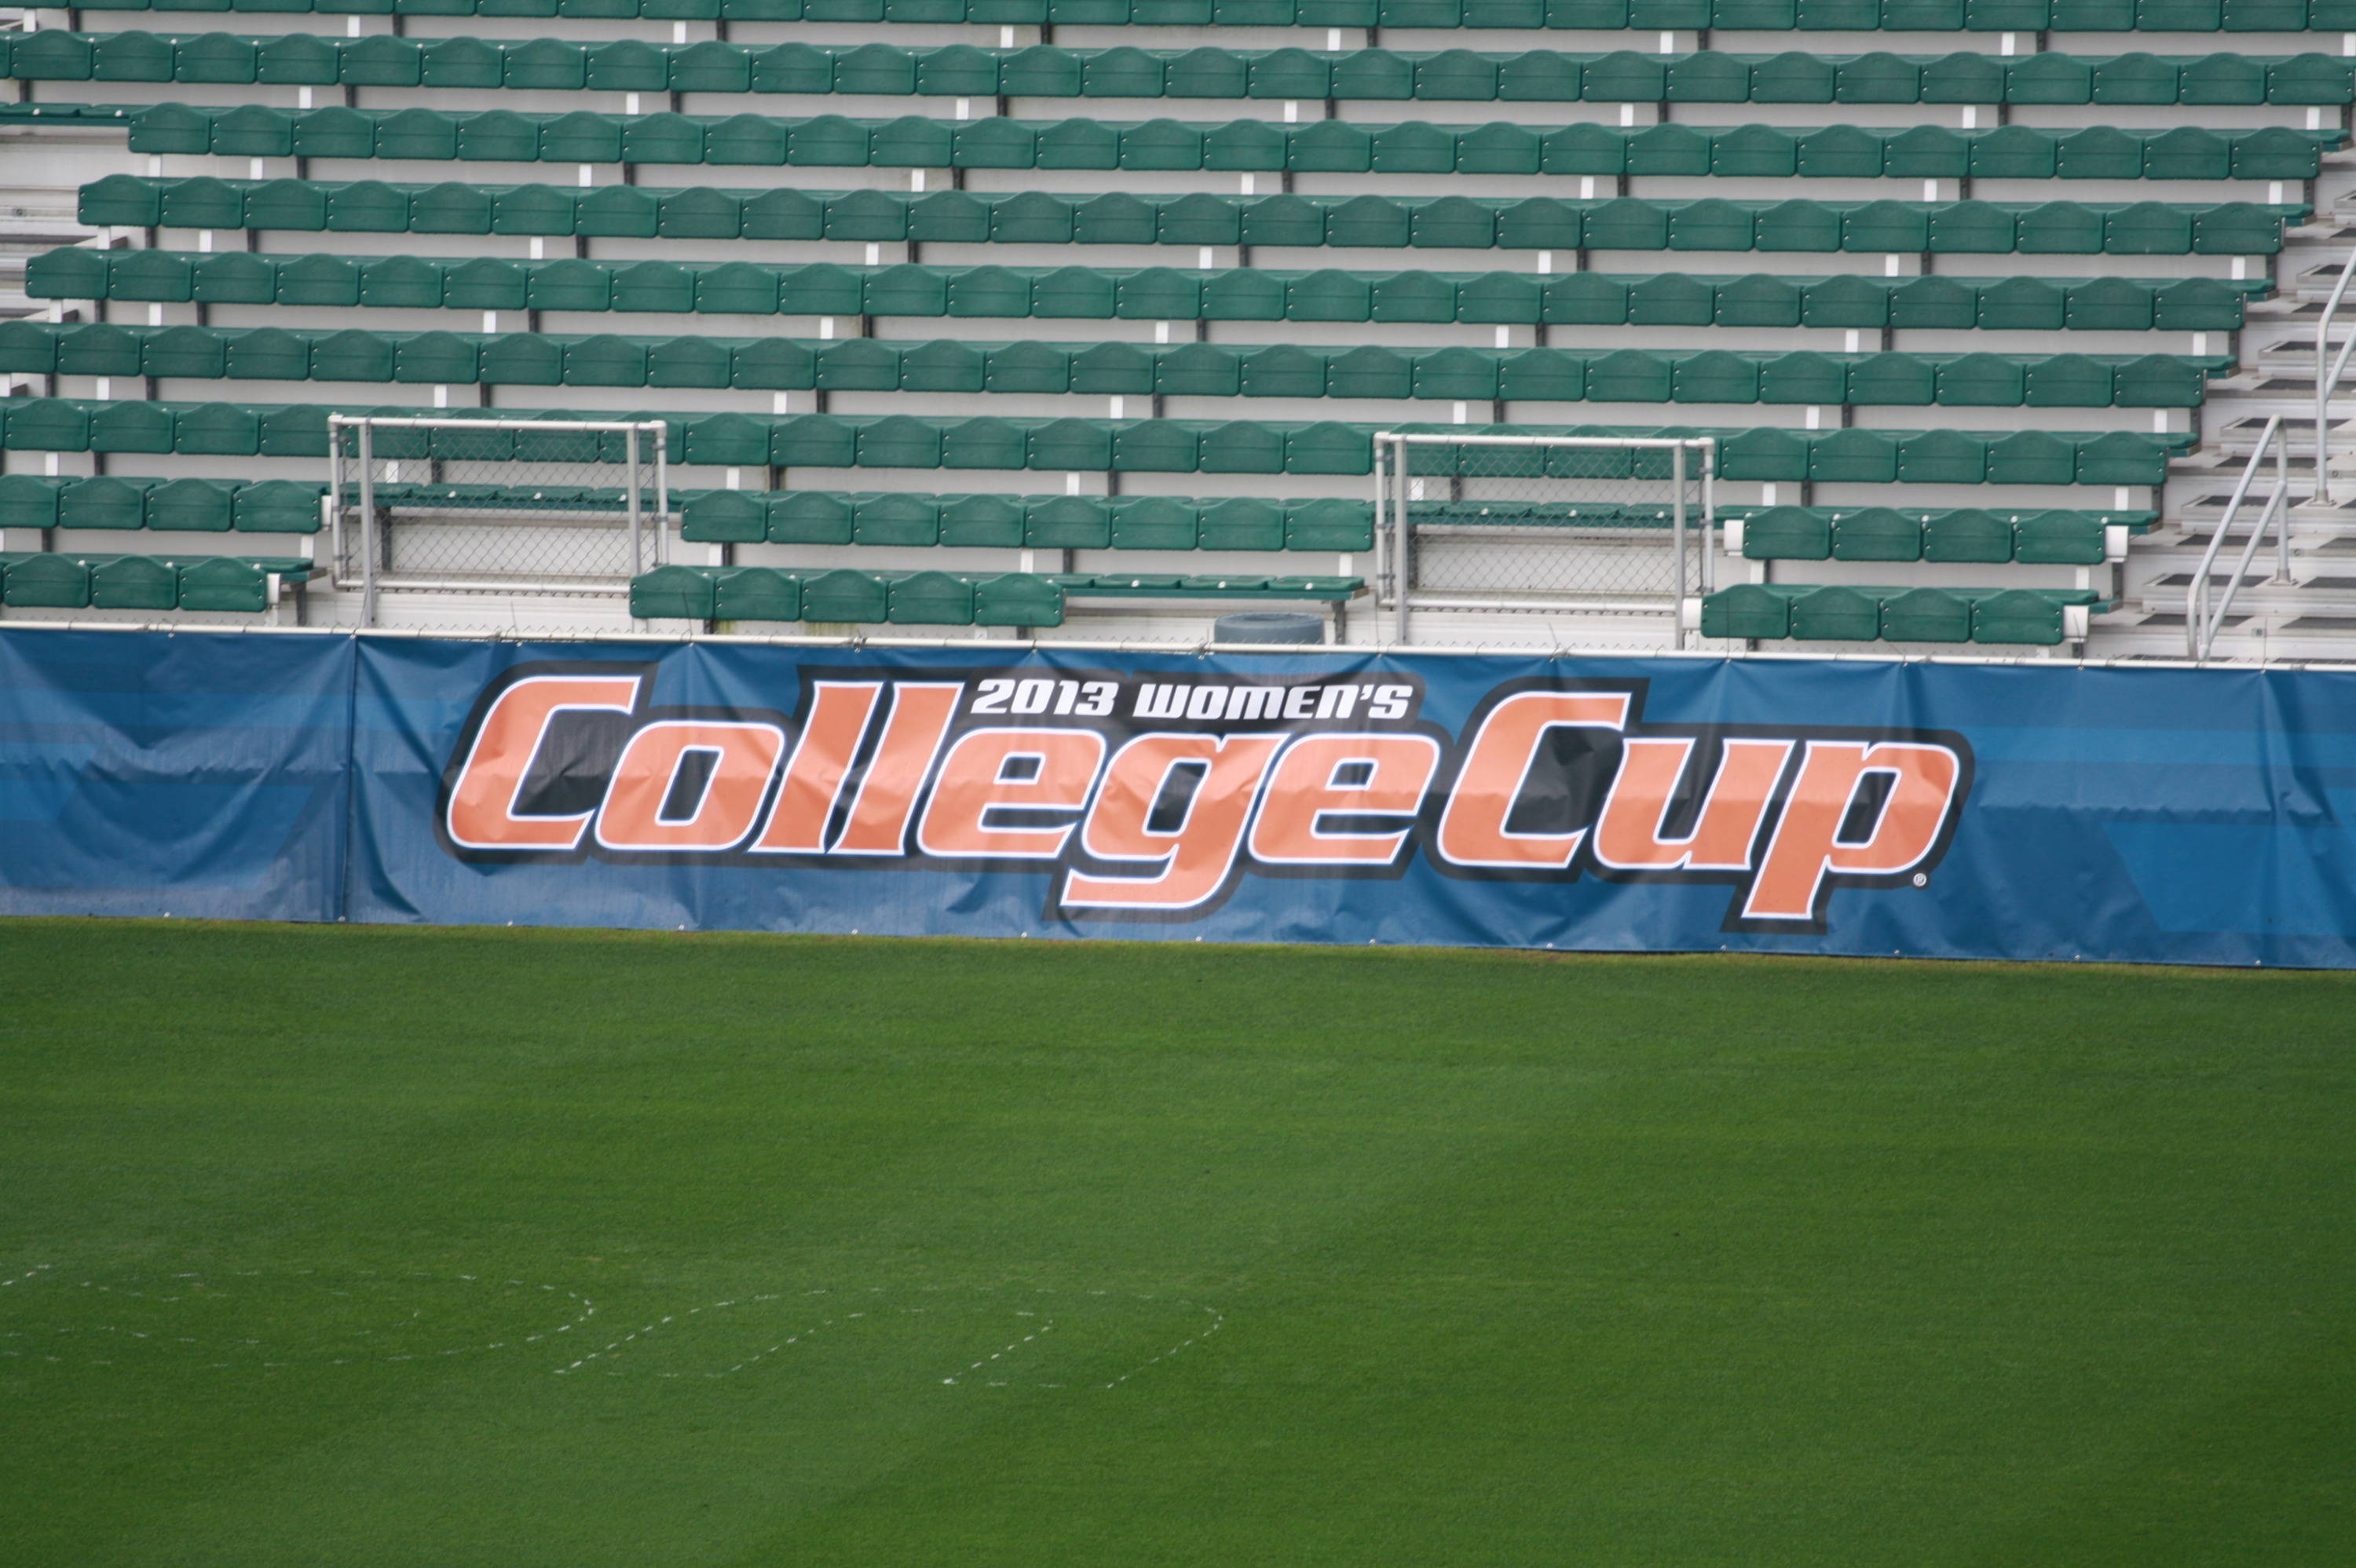 2013 College Cup WakeMed Park in Cary, N.C.